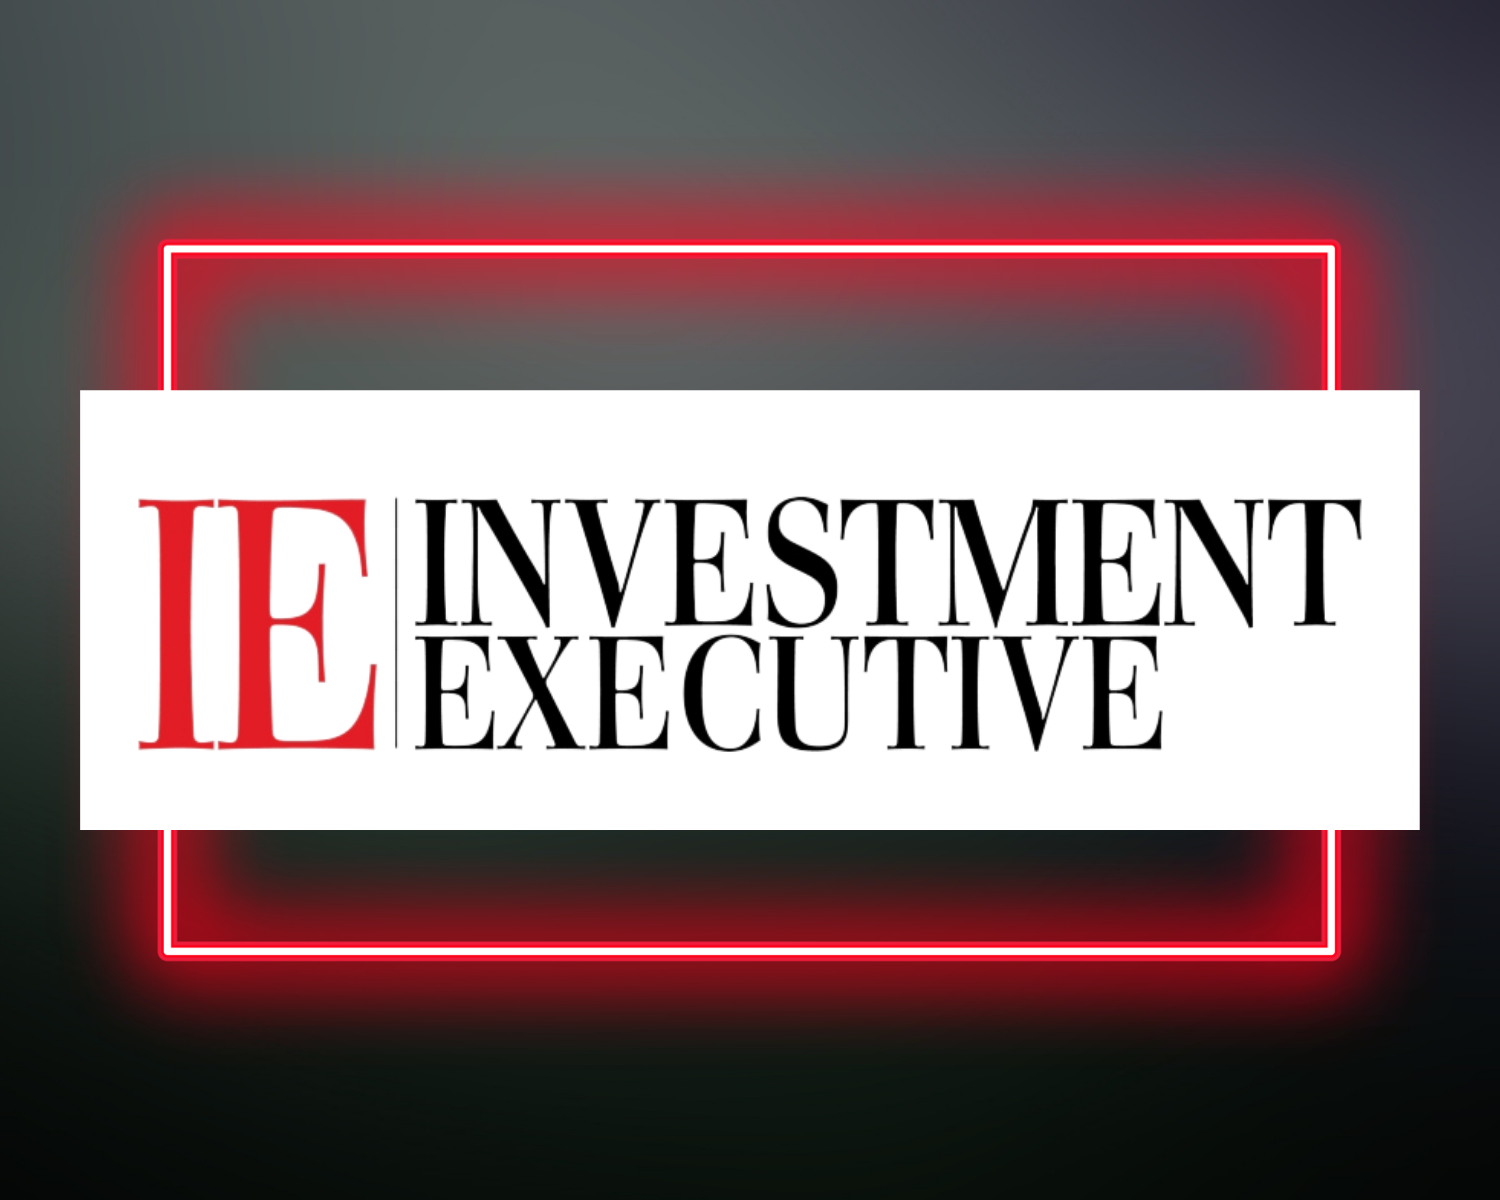 Investment Executive Article: Conquest Planning Raises $7.5M to Accelerate Growth